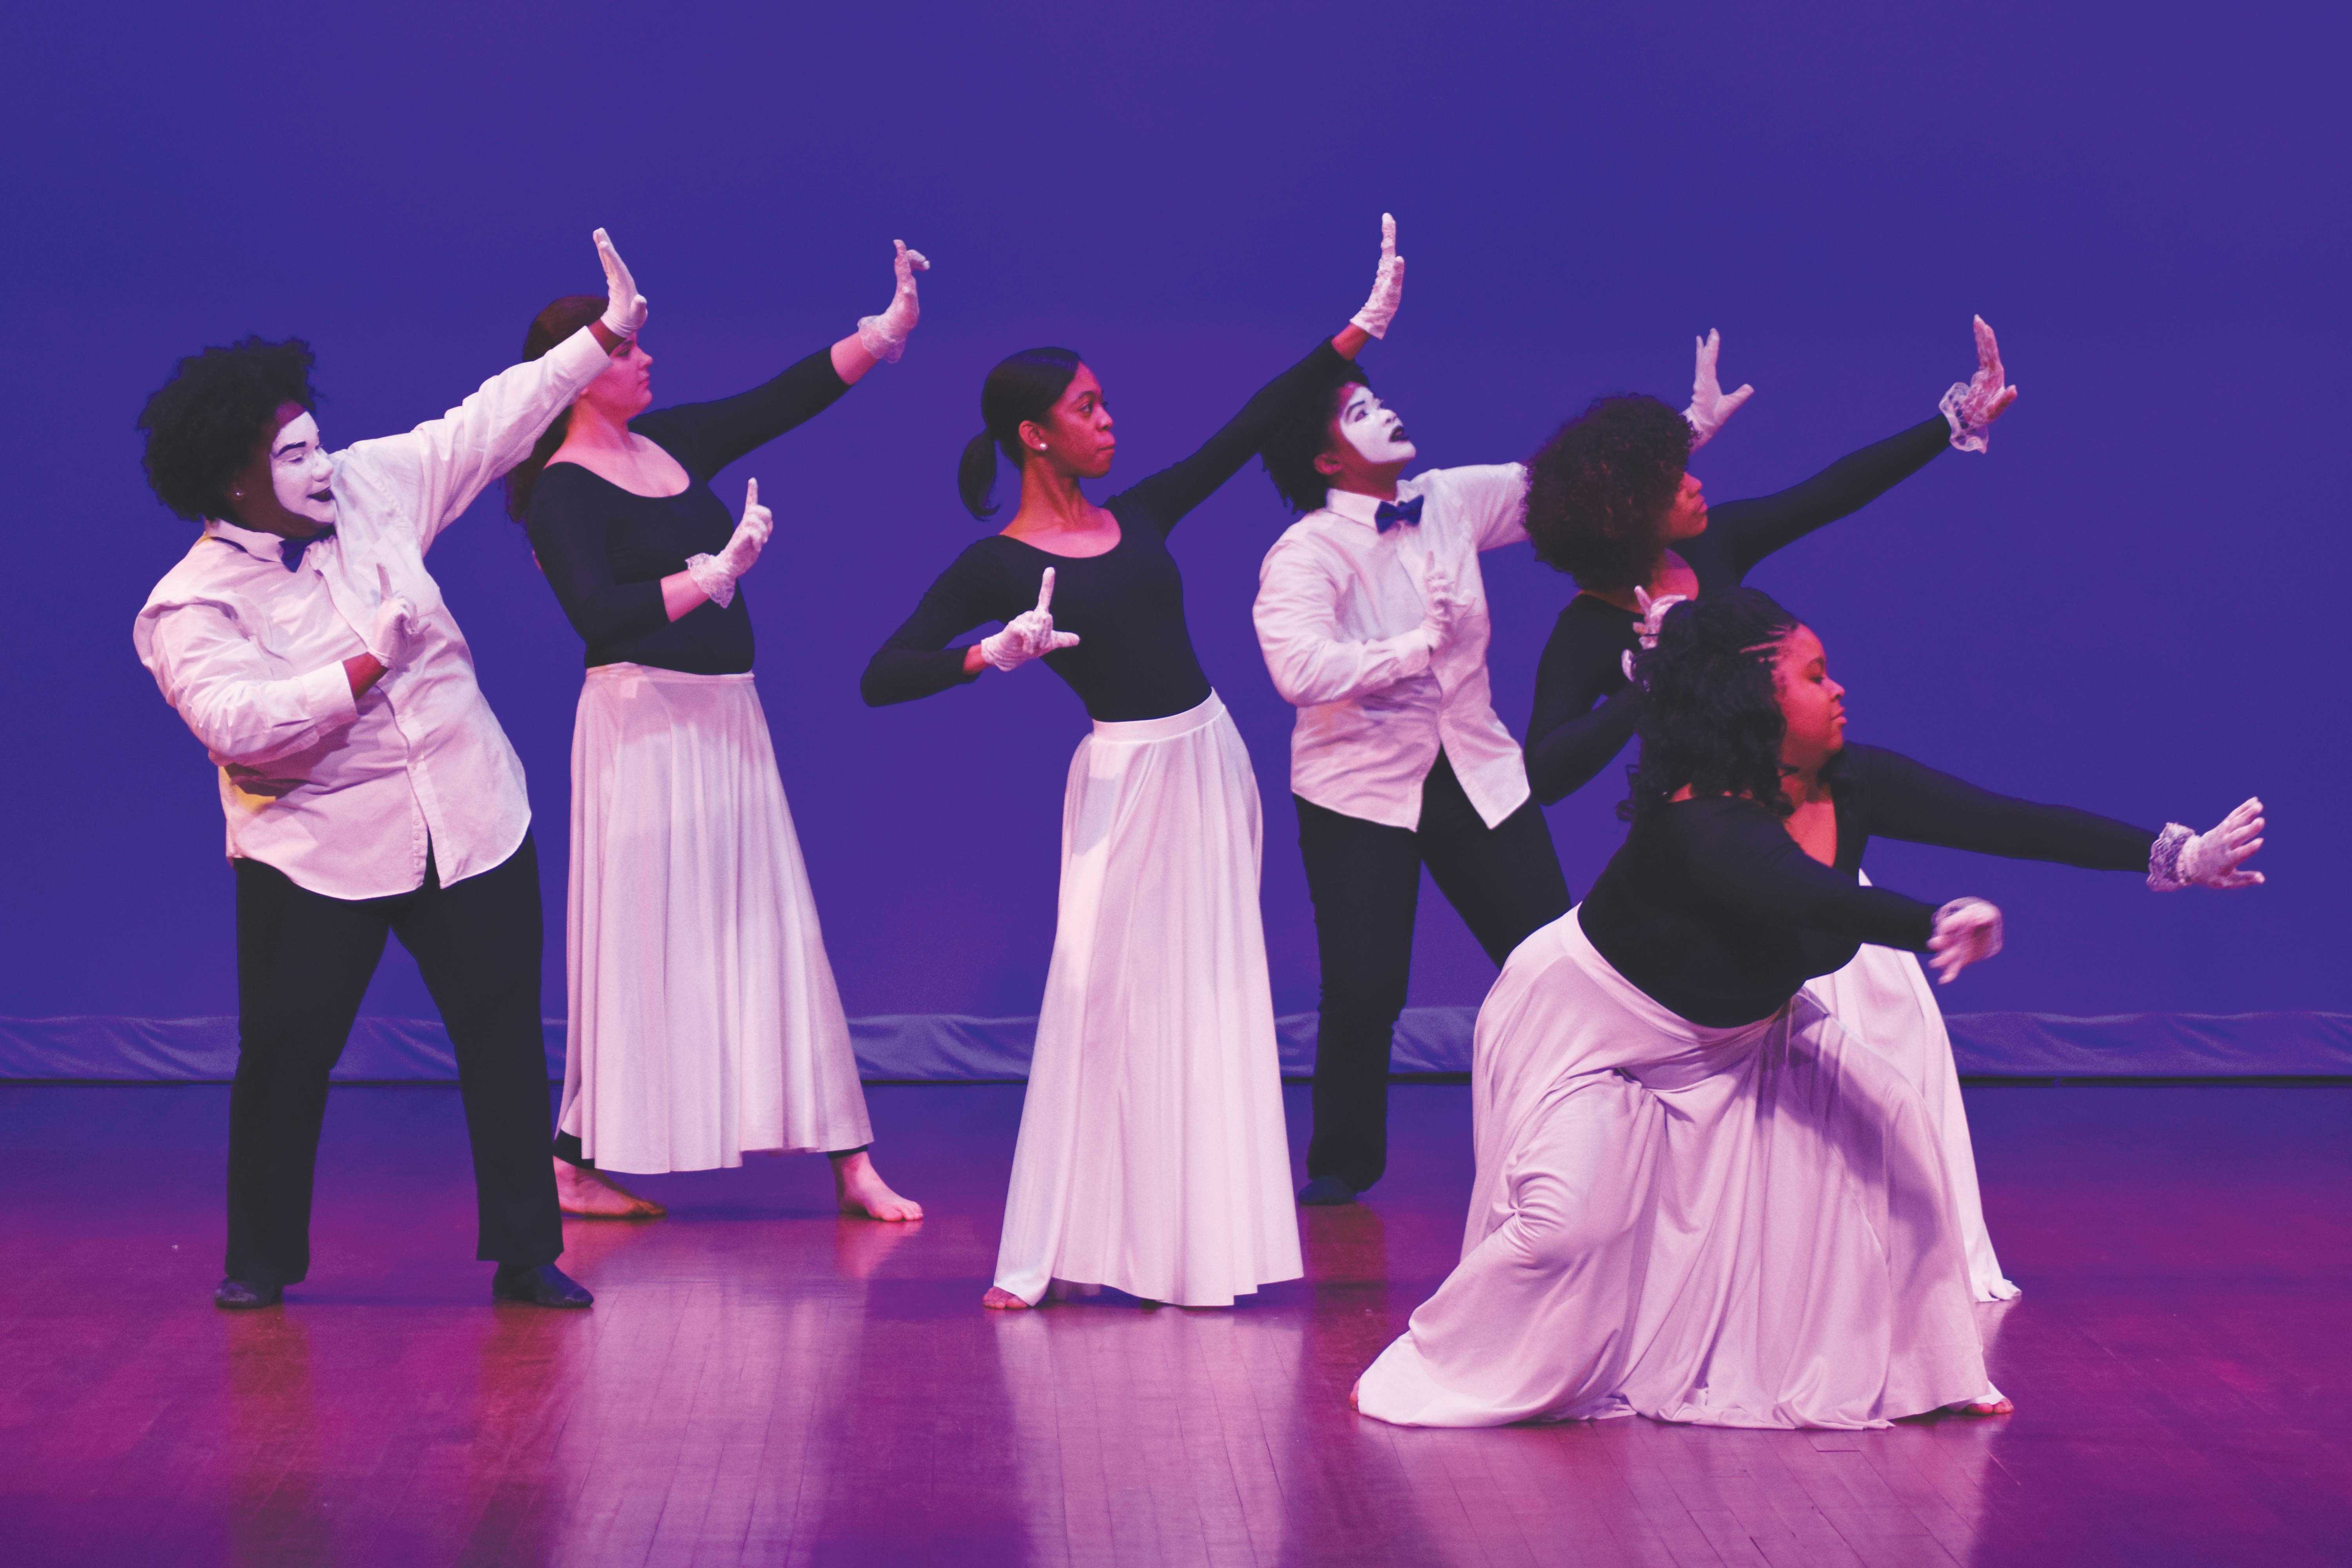 Praise in Motion Dance Ministry performs to celebrate contributions Martin Luther King Jr. made to the Civil Rights movement.